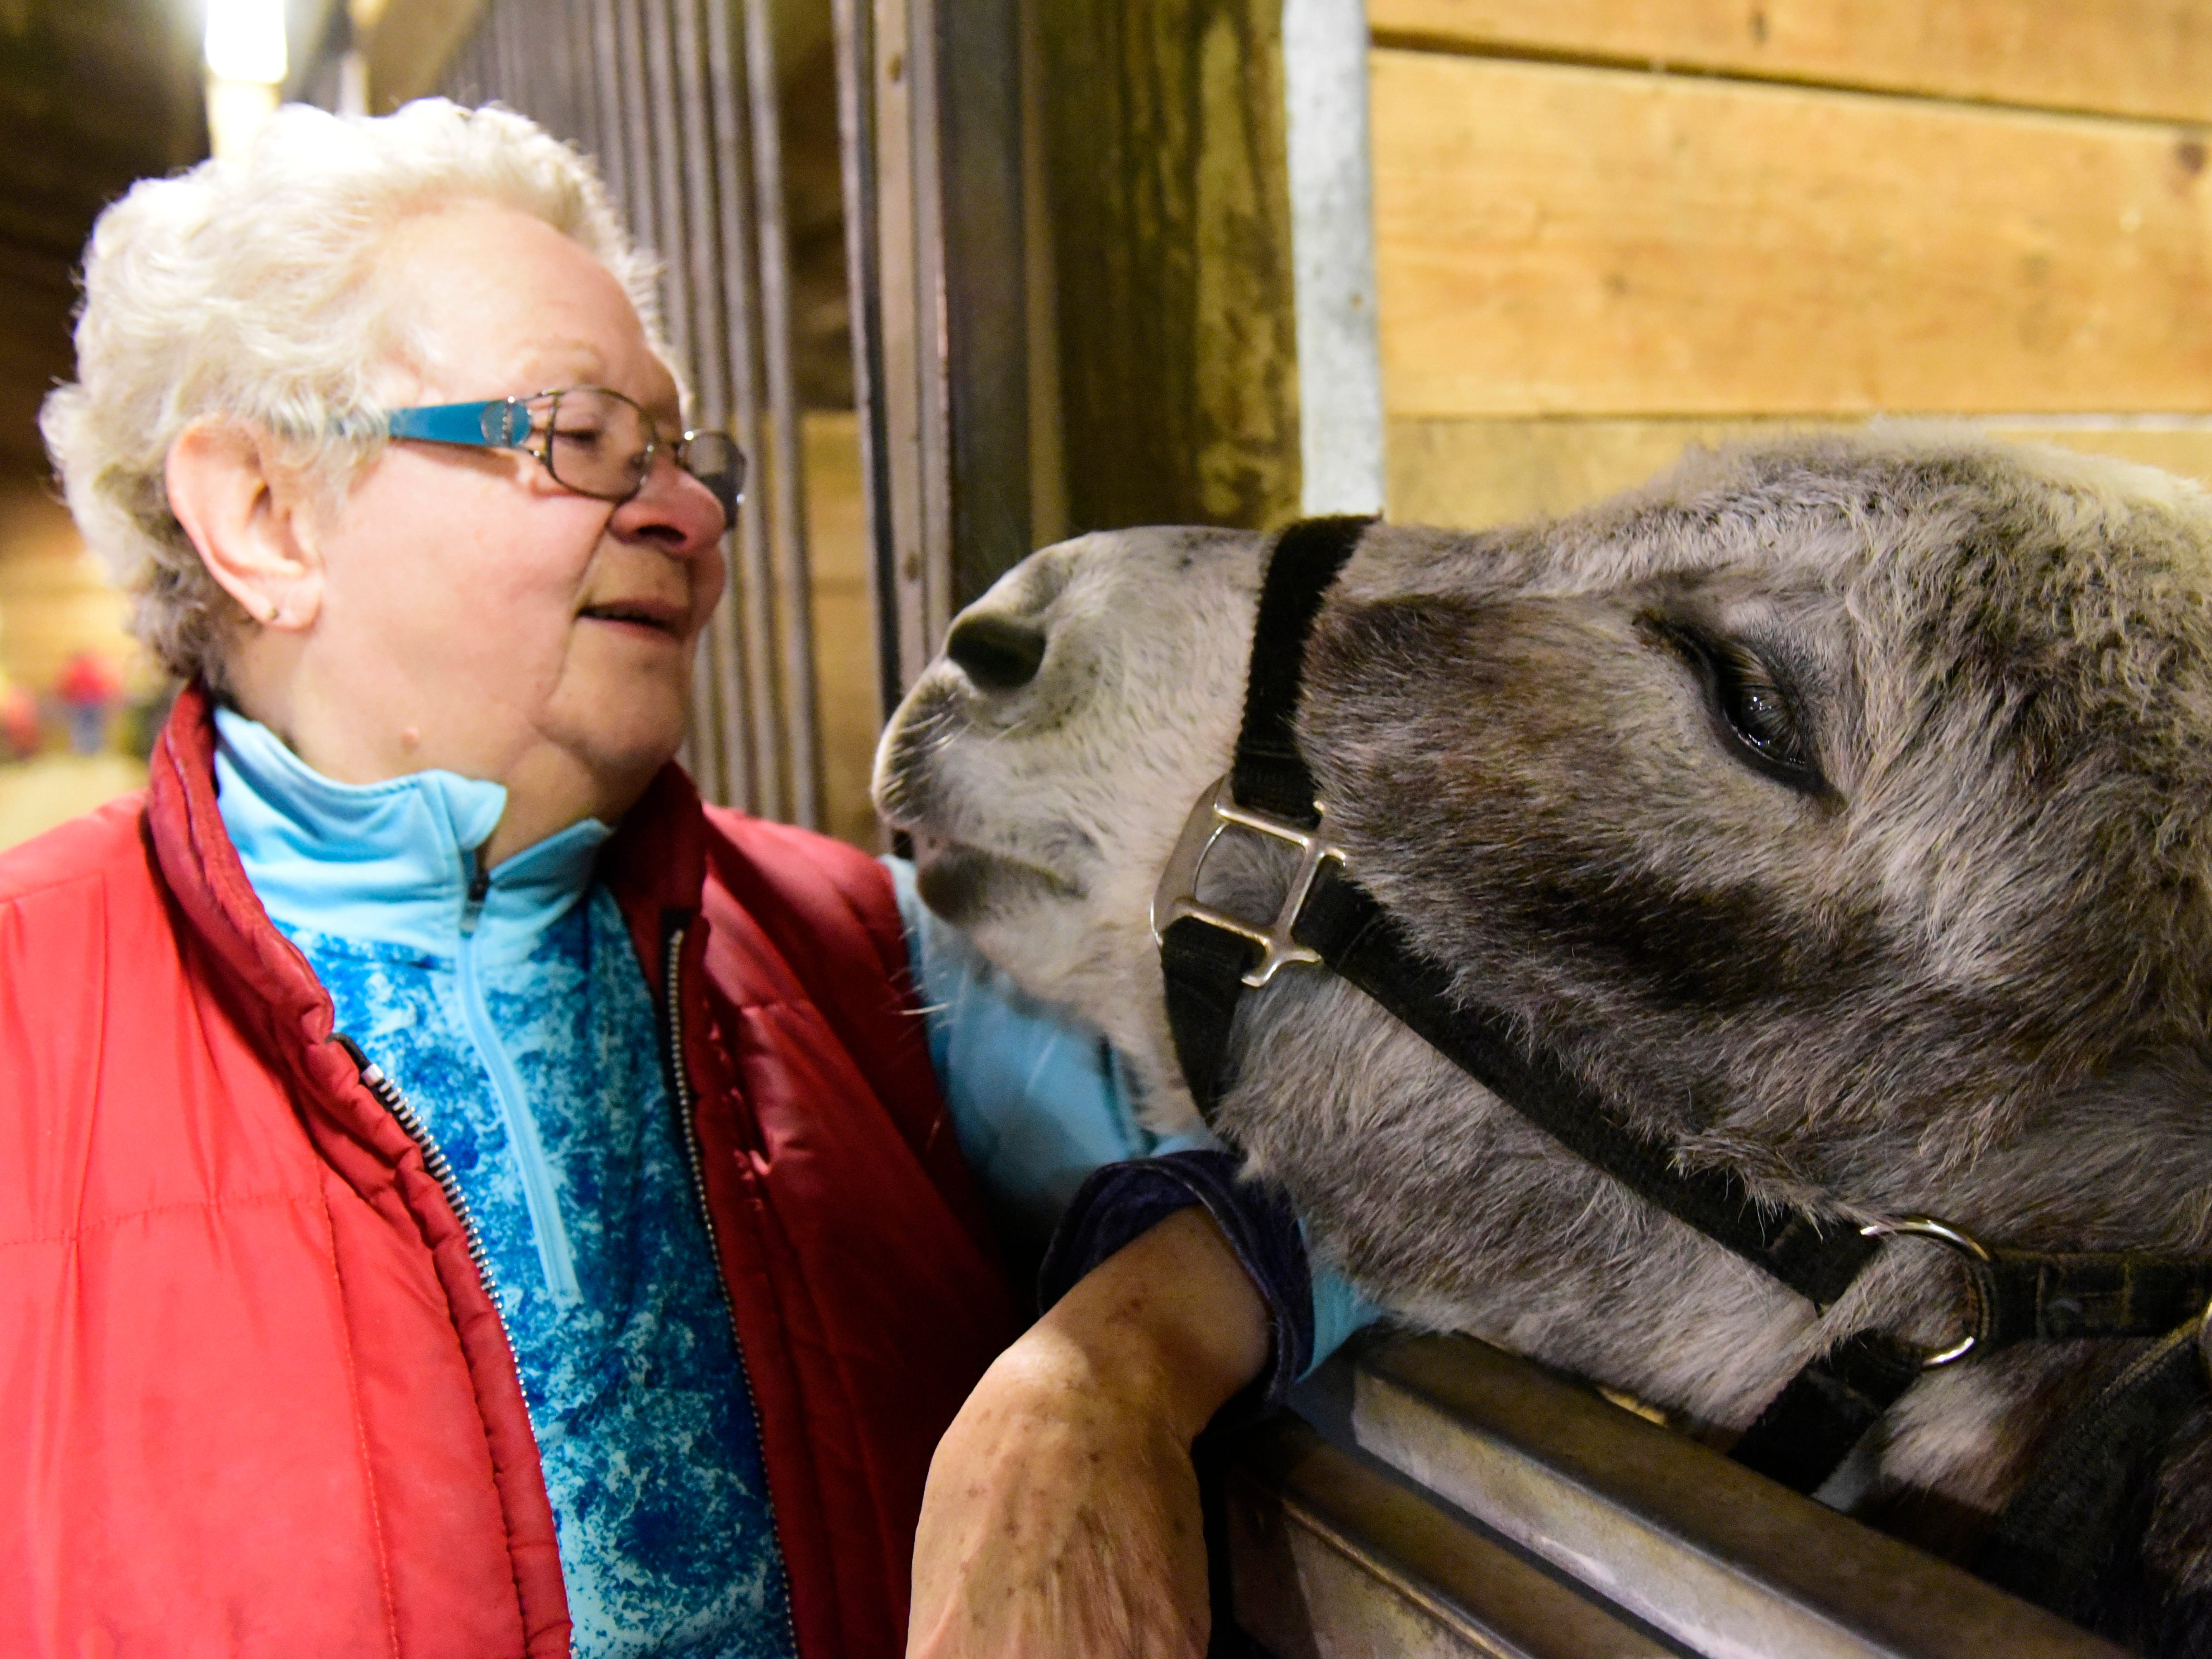 Lee Carrington, administrative assistant with Riders Unlimited, Inc., enjoys a playful moment with Davey the donkey.